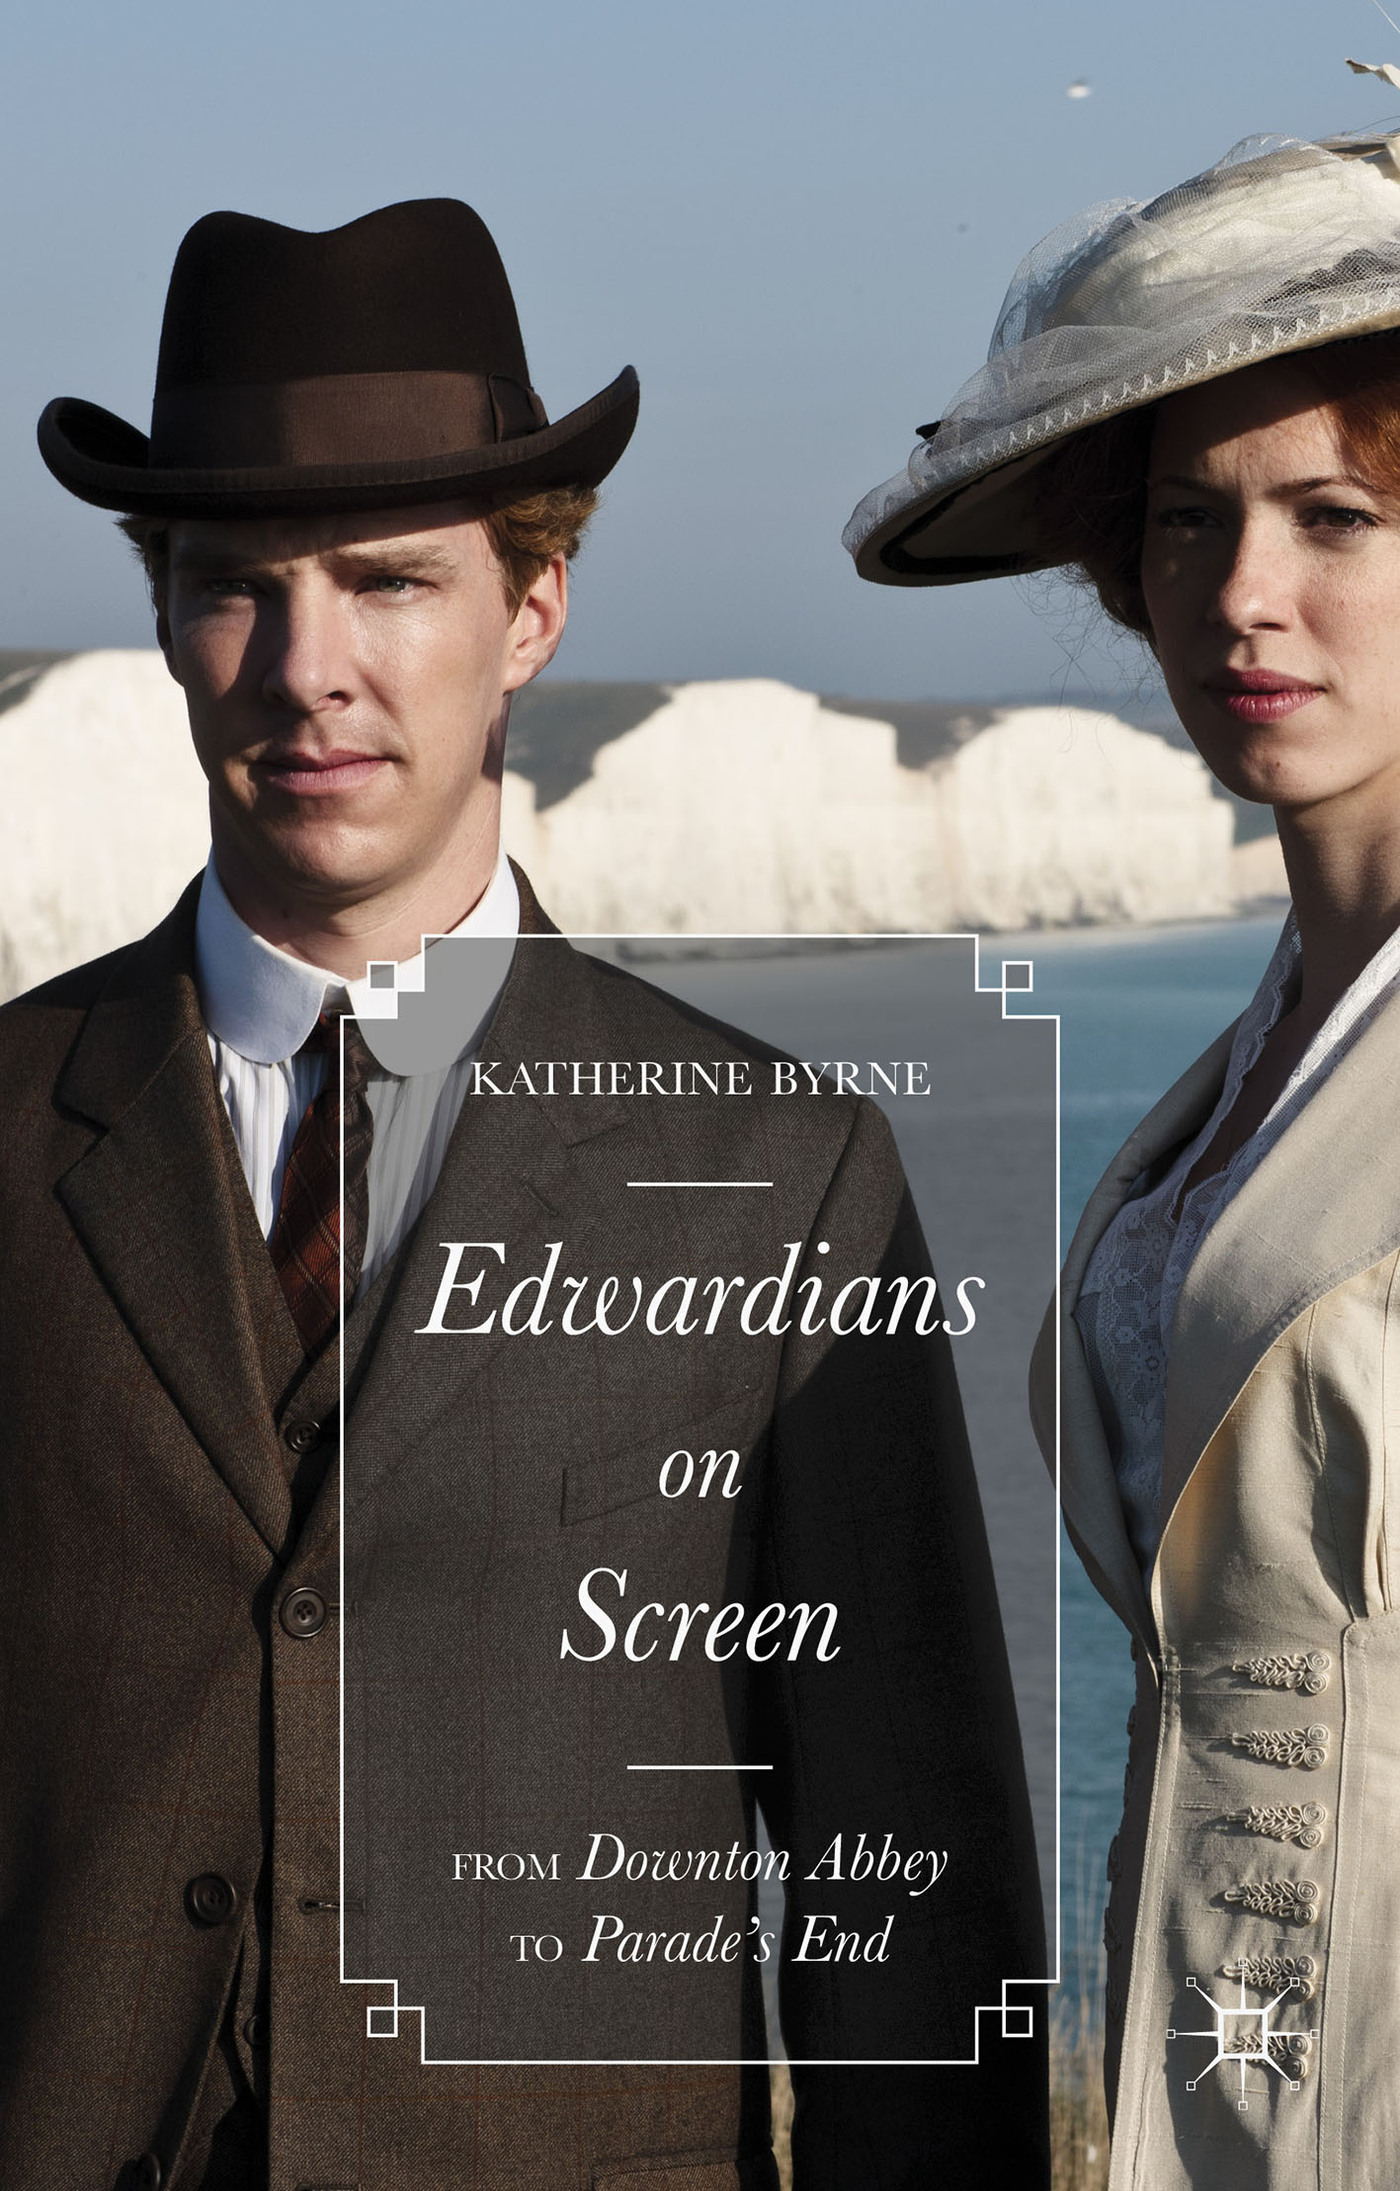 Edwardians on Screen: From Downton Abbey to Parade's End